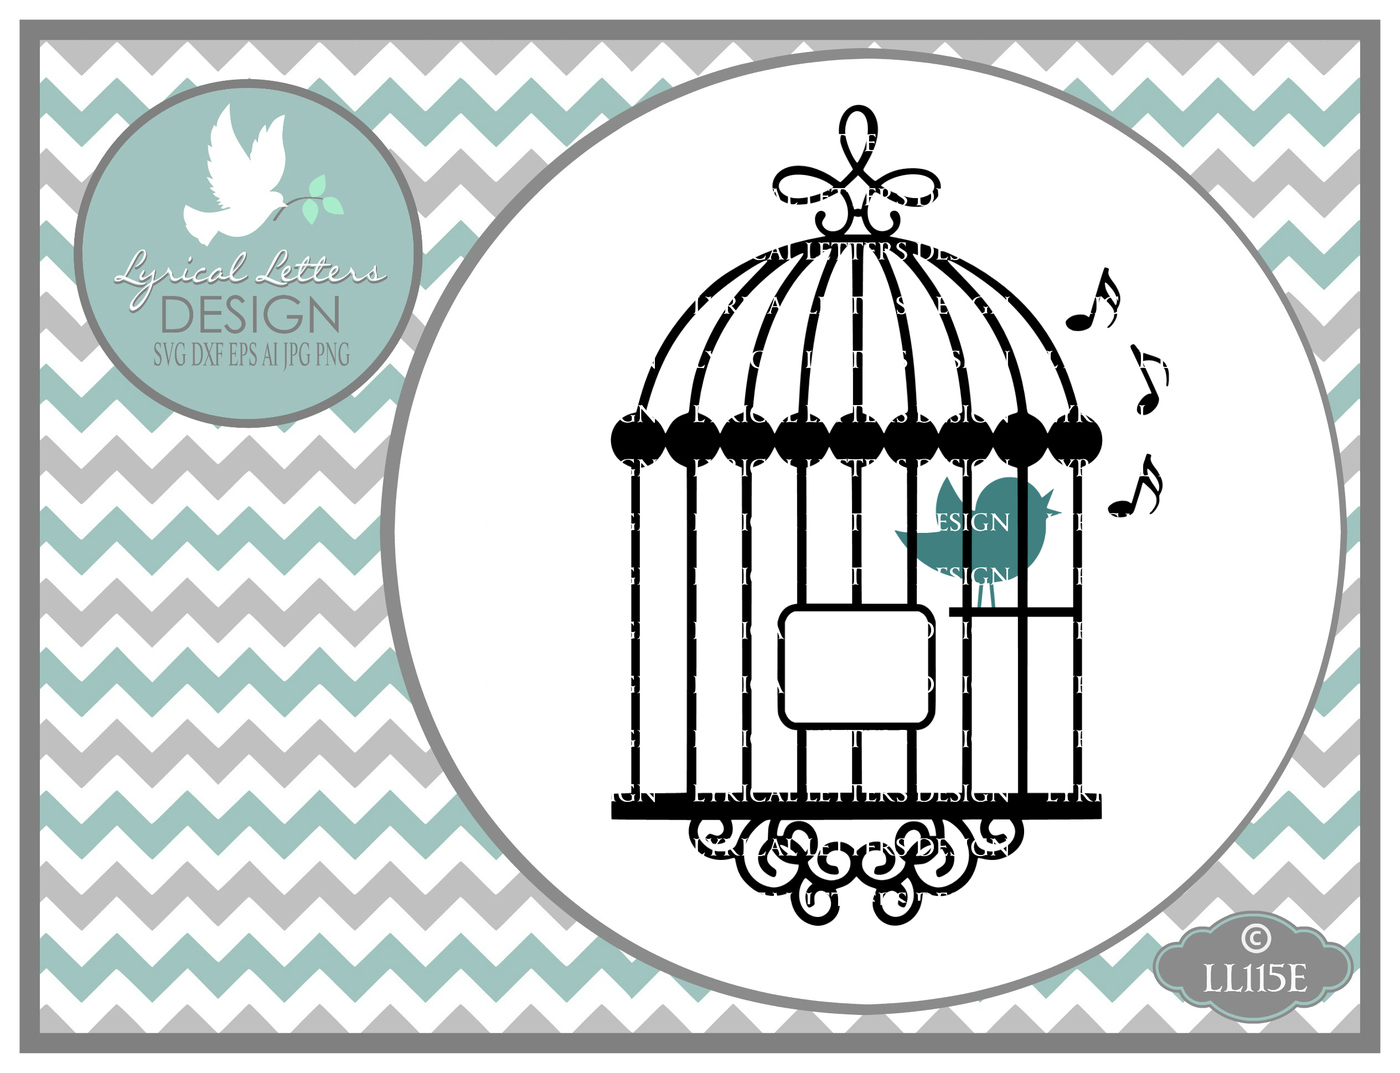 Song Bird In a Cage with music notes